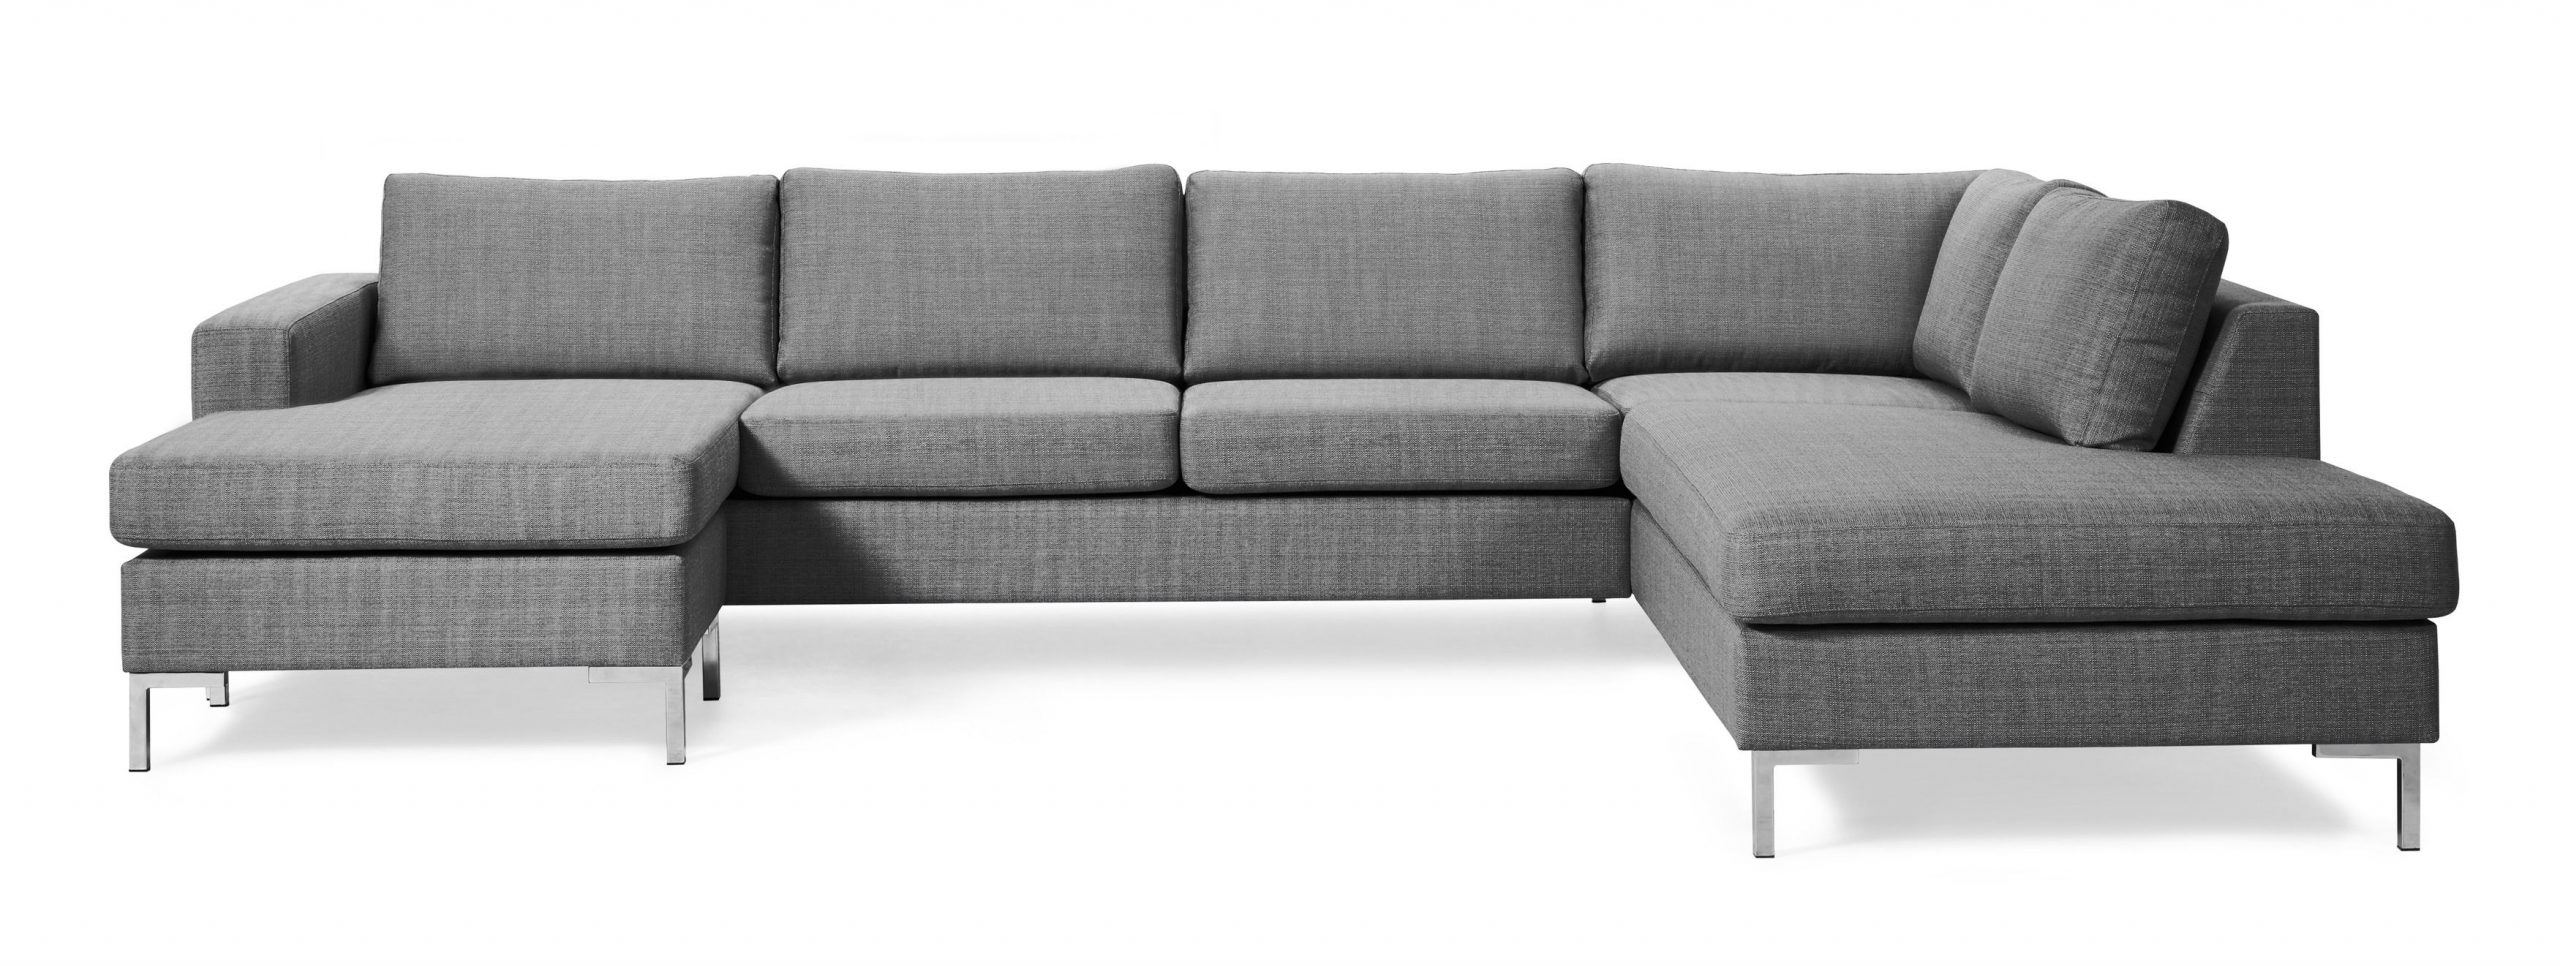 Nz Sectional Soffor